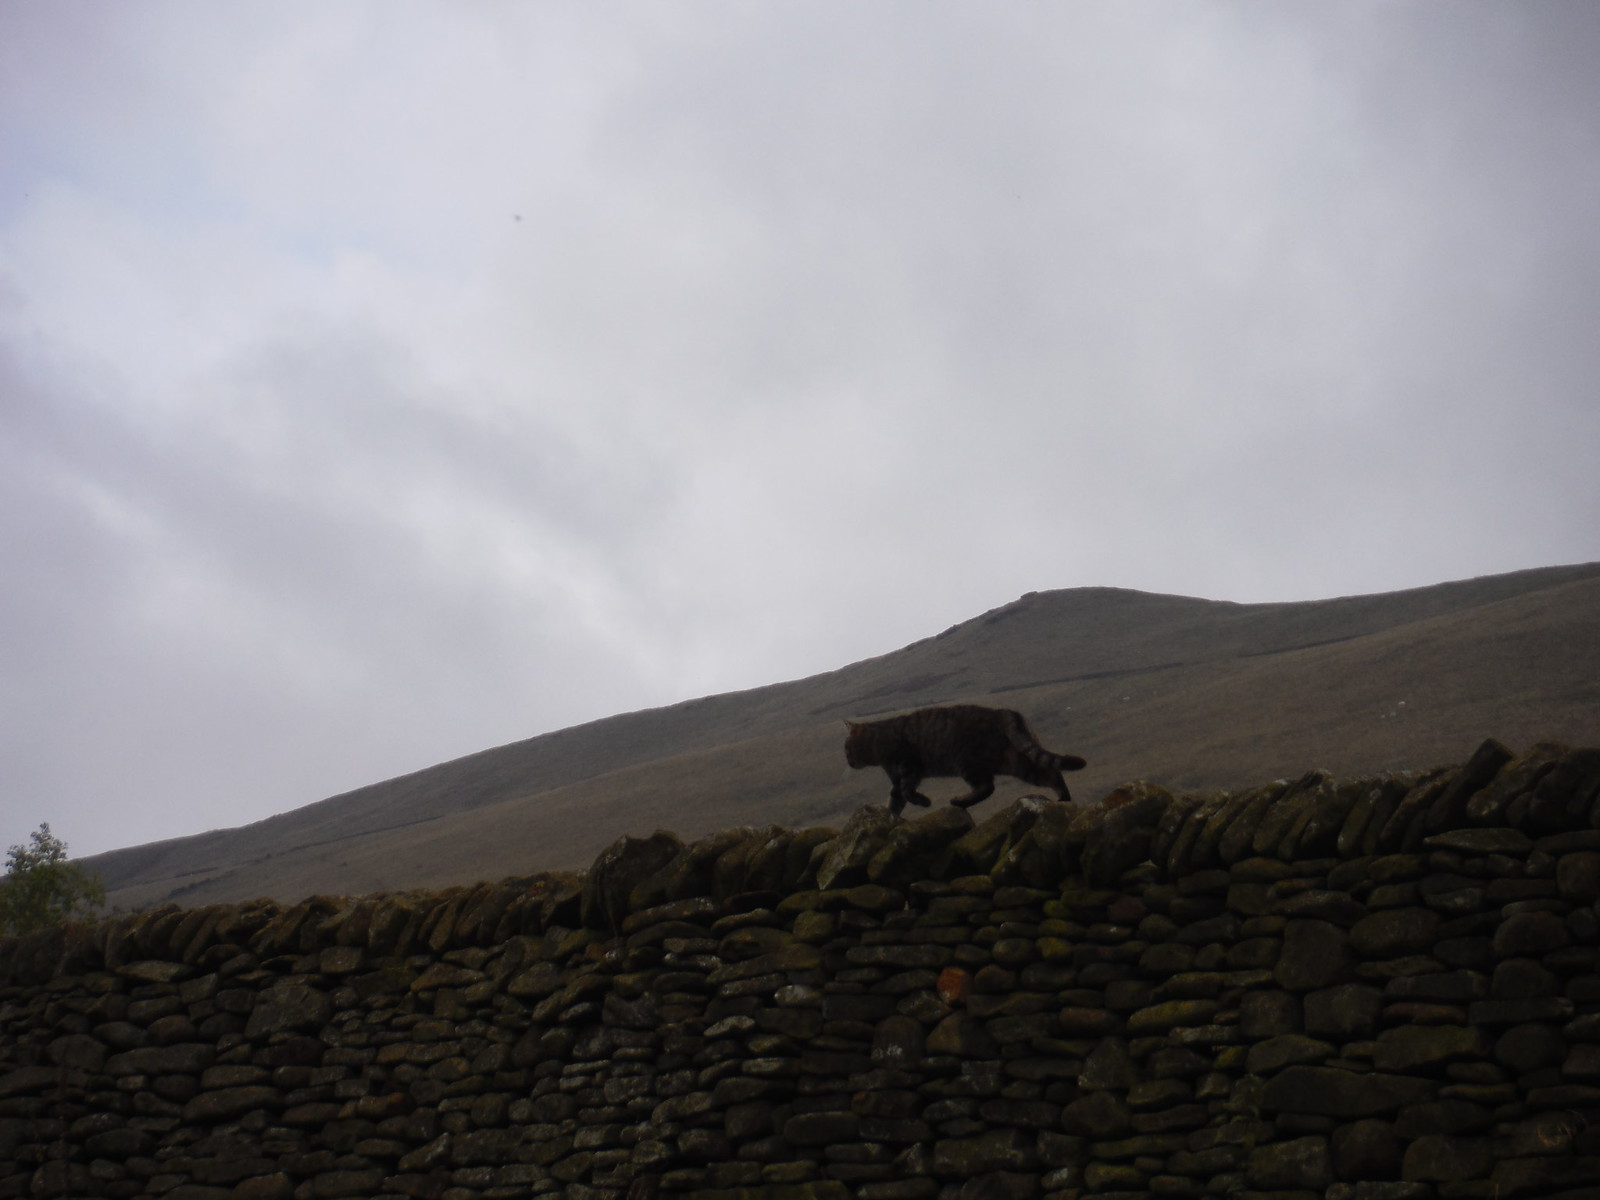 Cat on Wall, Pennine Way SWC Walk 303 - Edale Circular (via Kinder Scout and Mam Tor)